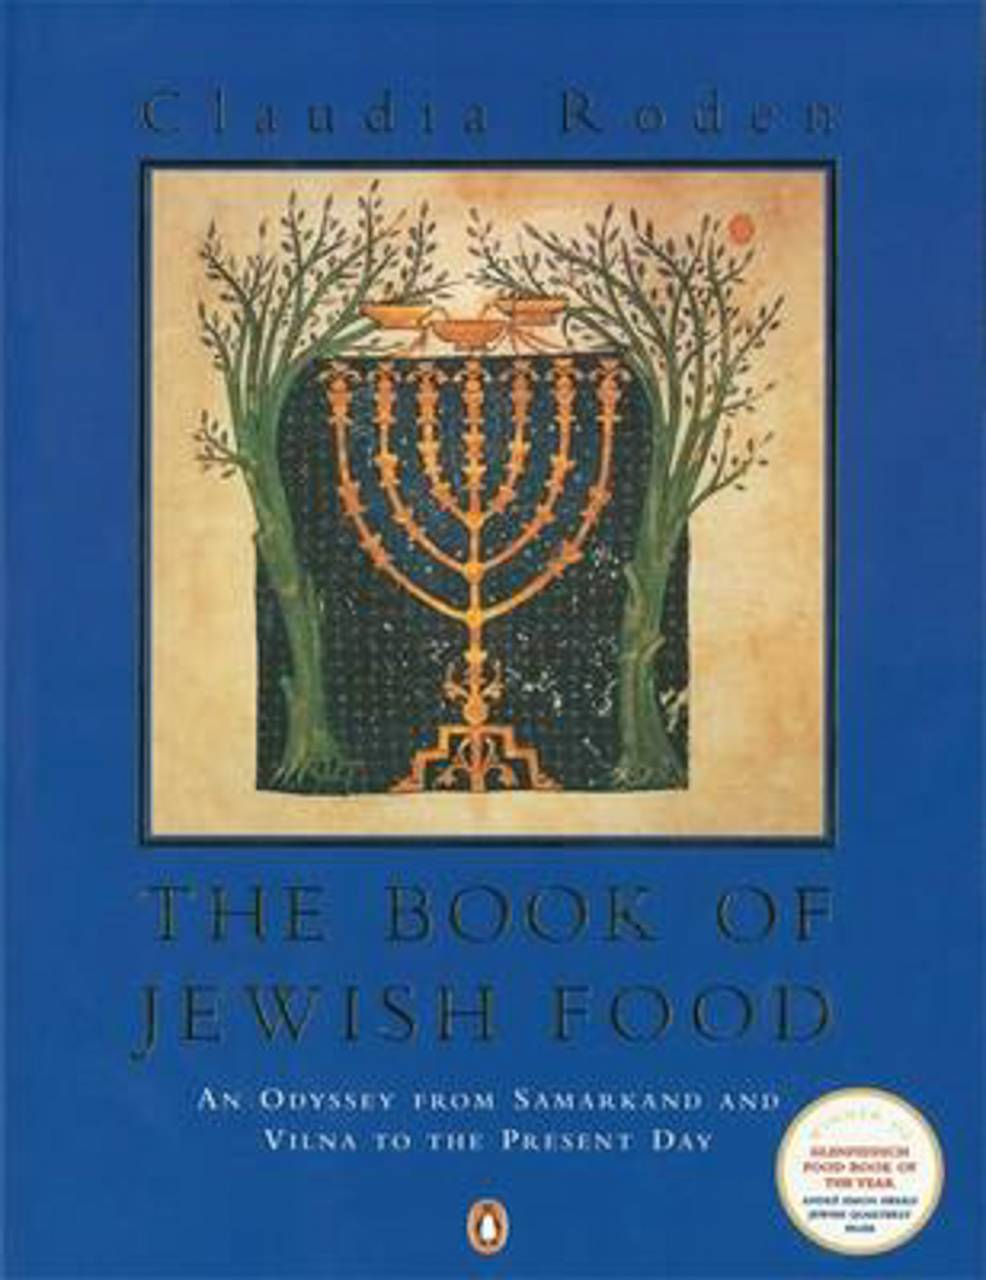 A delicious cookbook that has some top recipes from the Jewish religion.